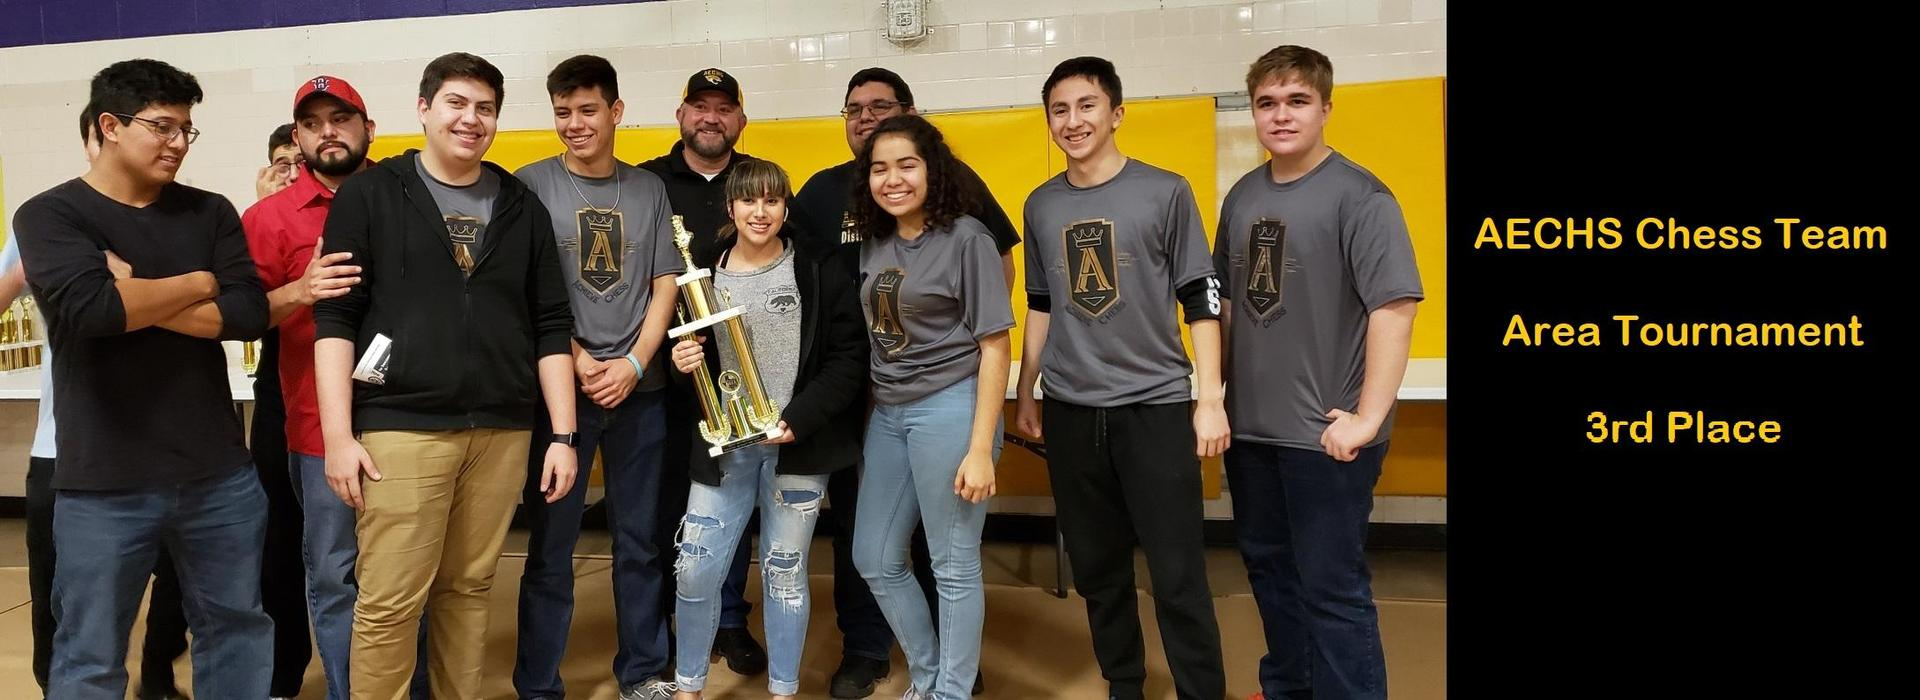 AECHS Chess Team at Area Tournament